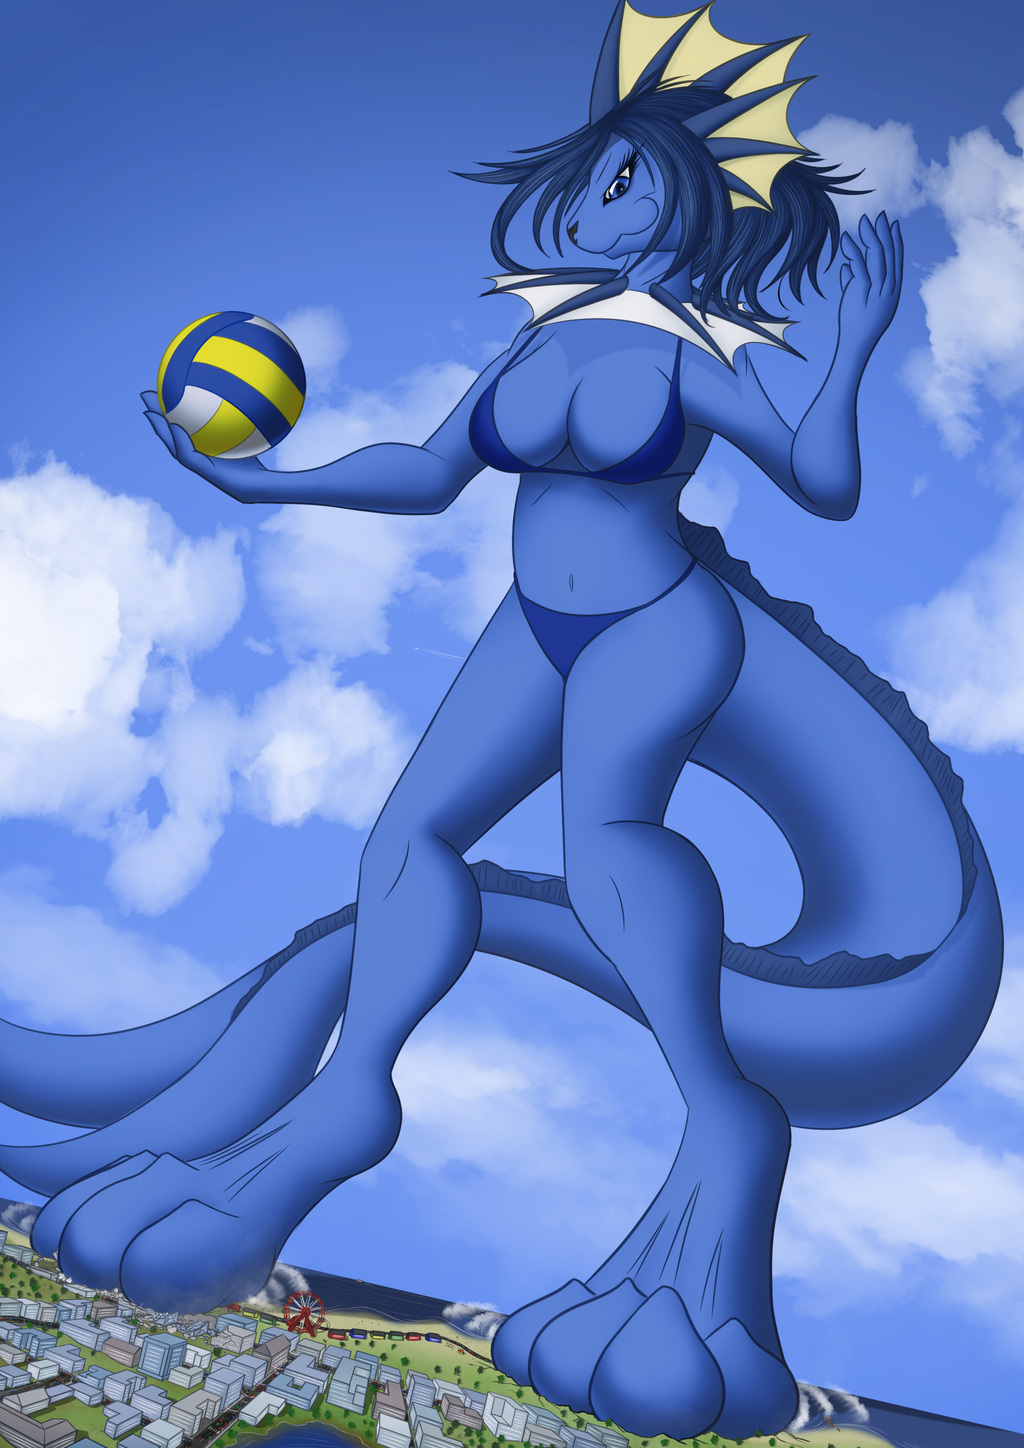 Who's Up For Volleyball?